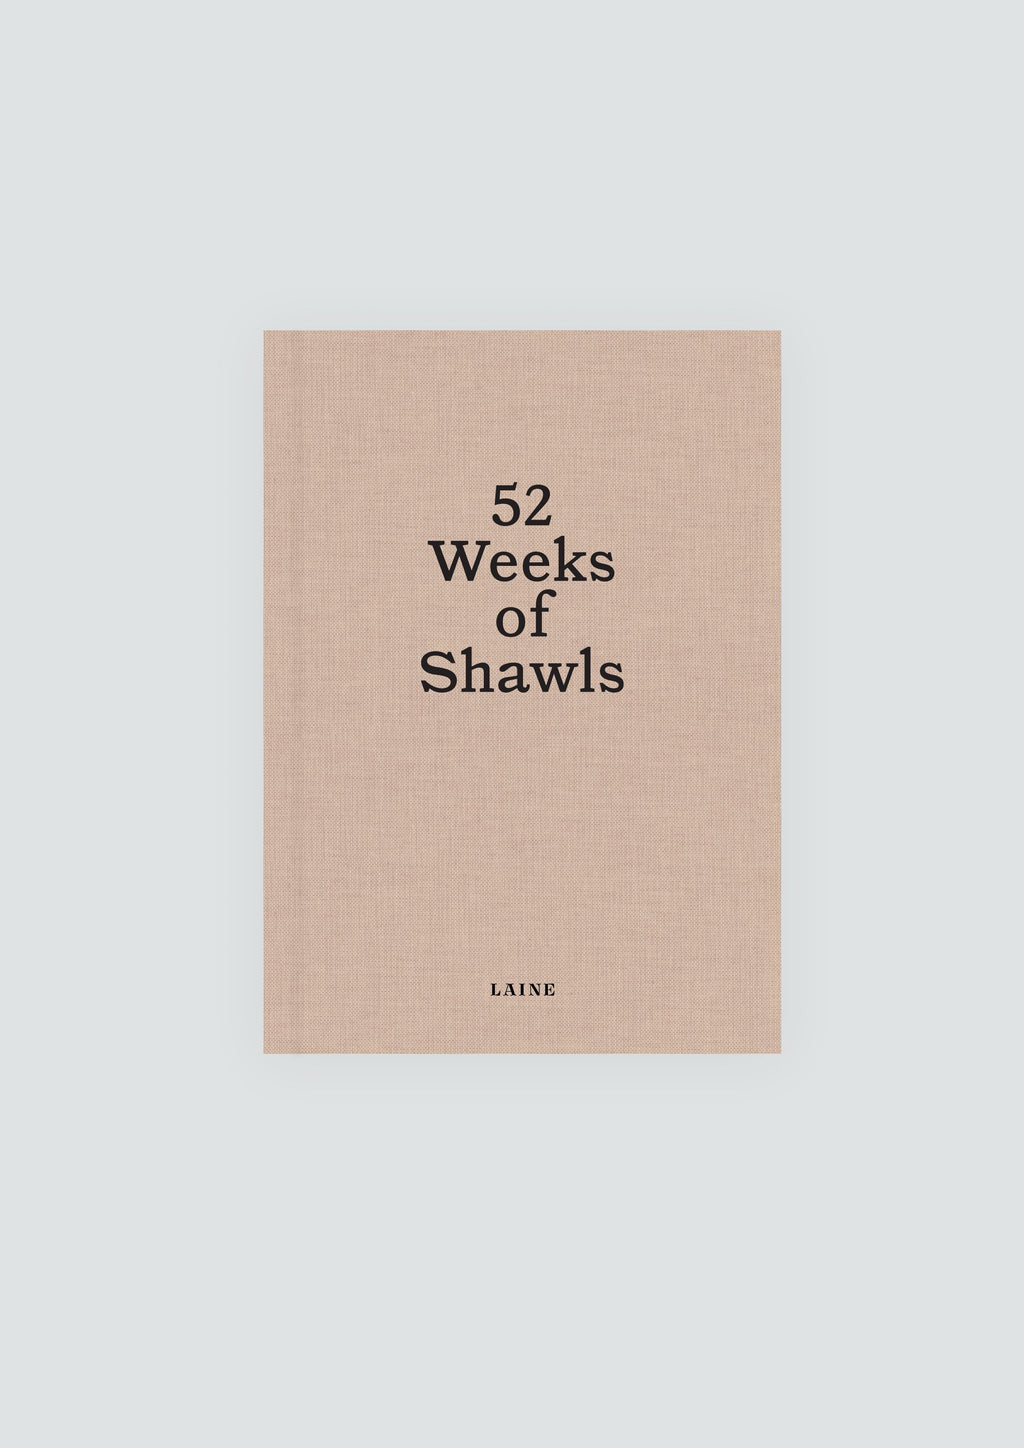 52 Weeks of Shawls - By Laine Magazine - Pre-Order for 30 April Release